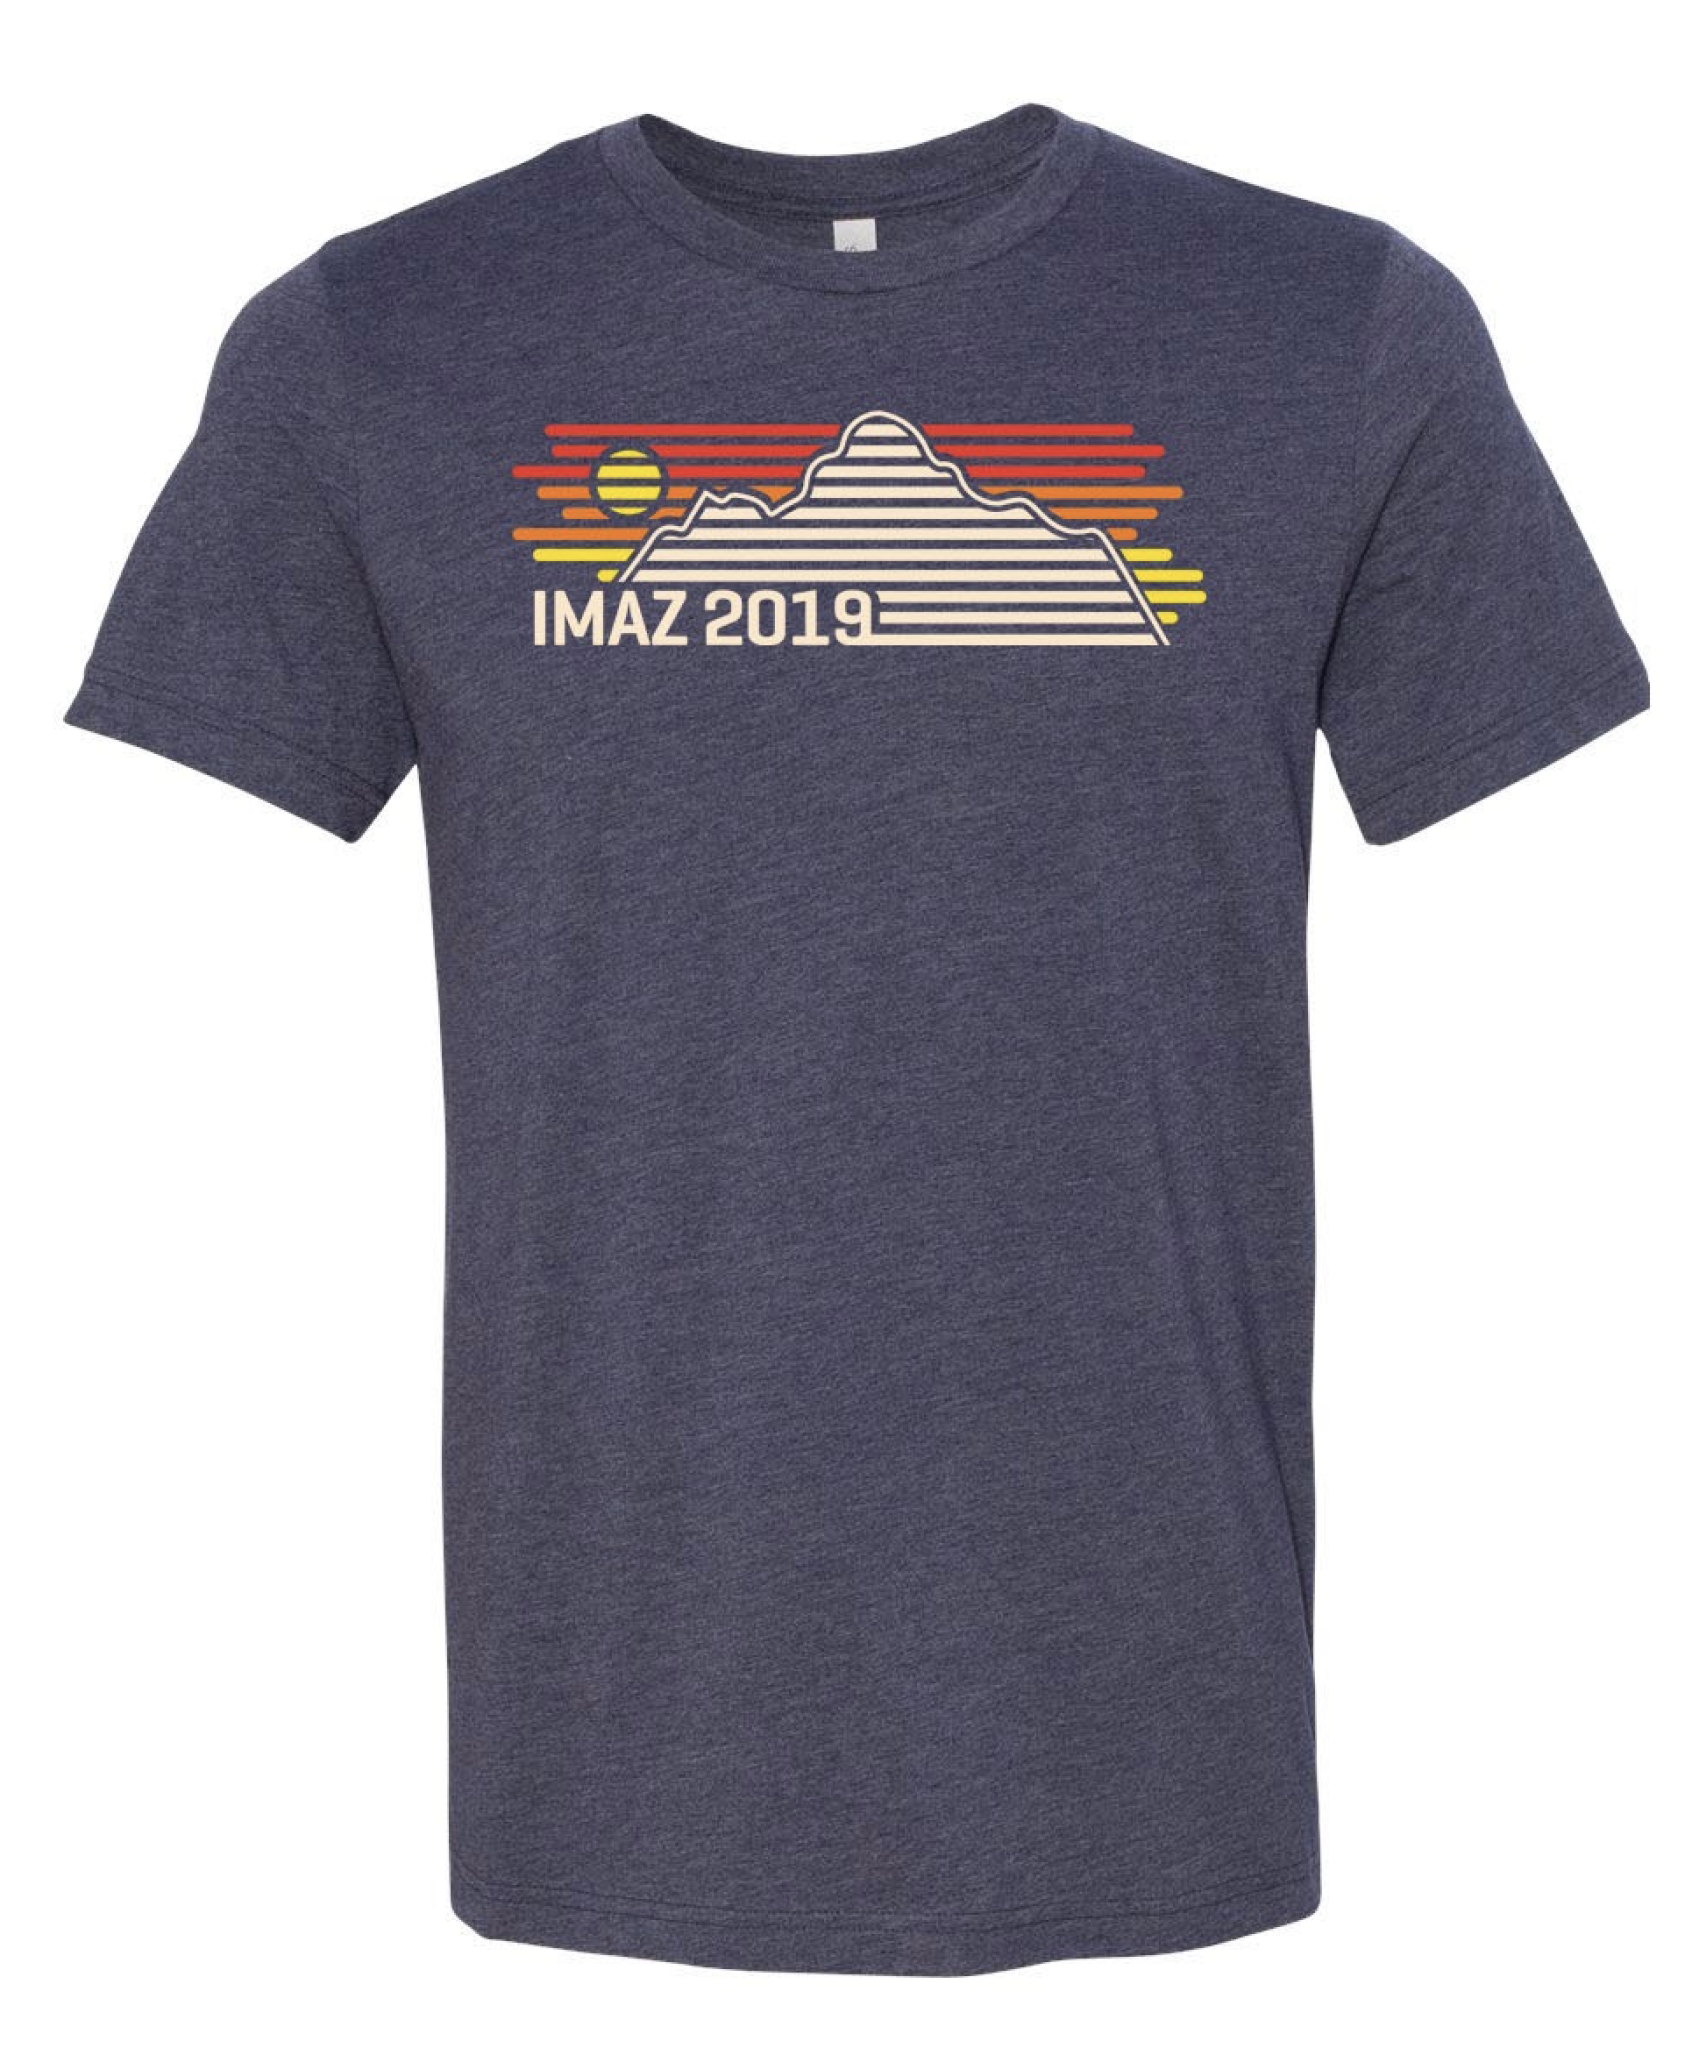 Bella Canvas IMAZ 2019 Men's T Shirt